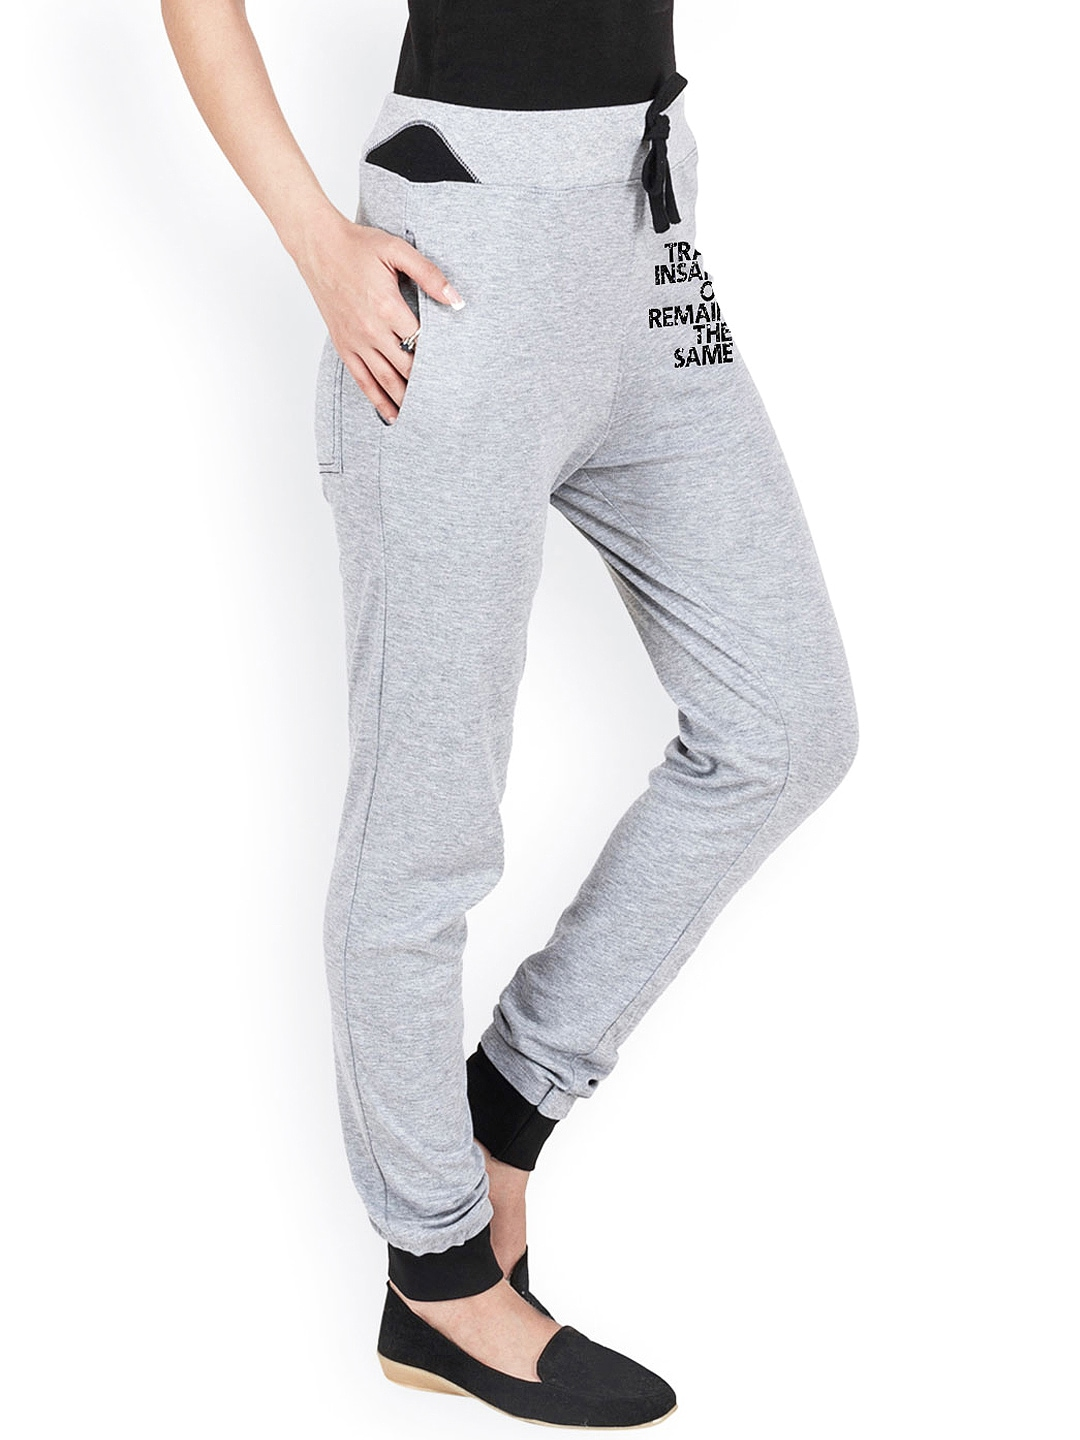 Fantastic Take Your Fitness Sessions To The Next Level By Wearing These Grey Track Pants For Women By Reebok Fashioned From 100% Cotton, These Regularfit Track Pants Will Keep You Cool And Sweat Free Team These Pants With A Tshirt And